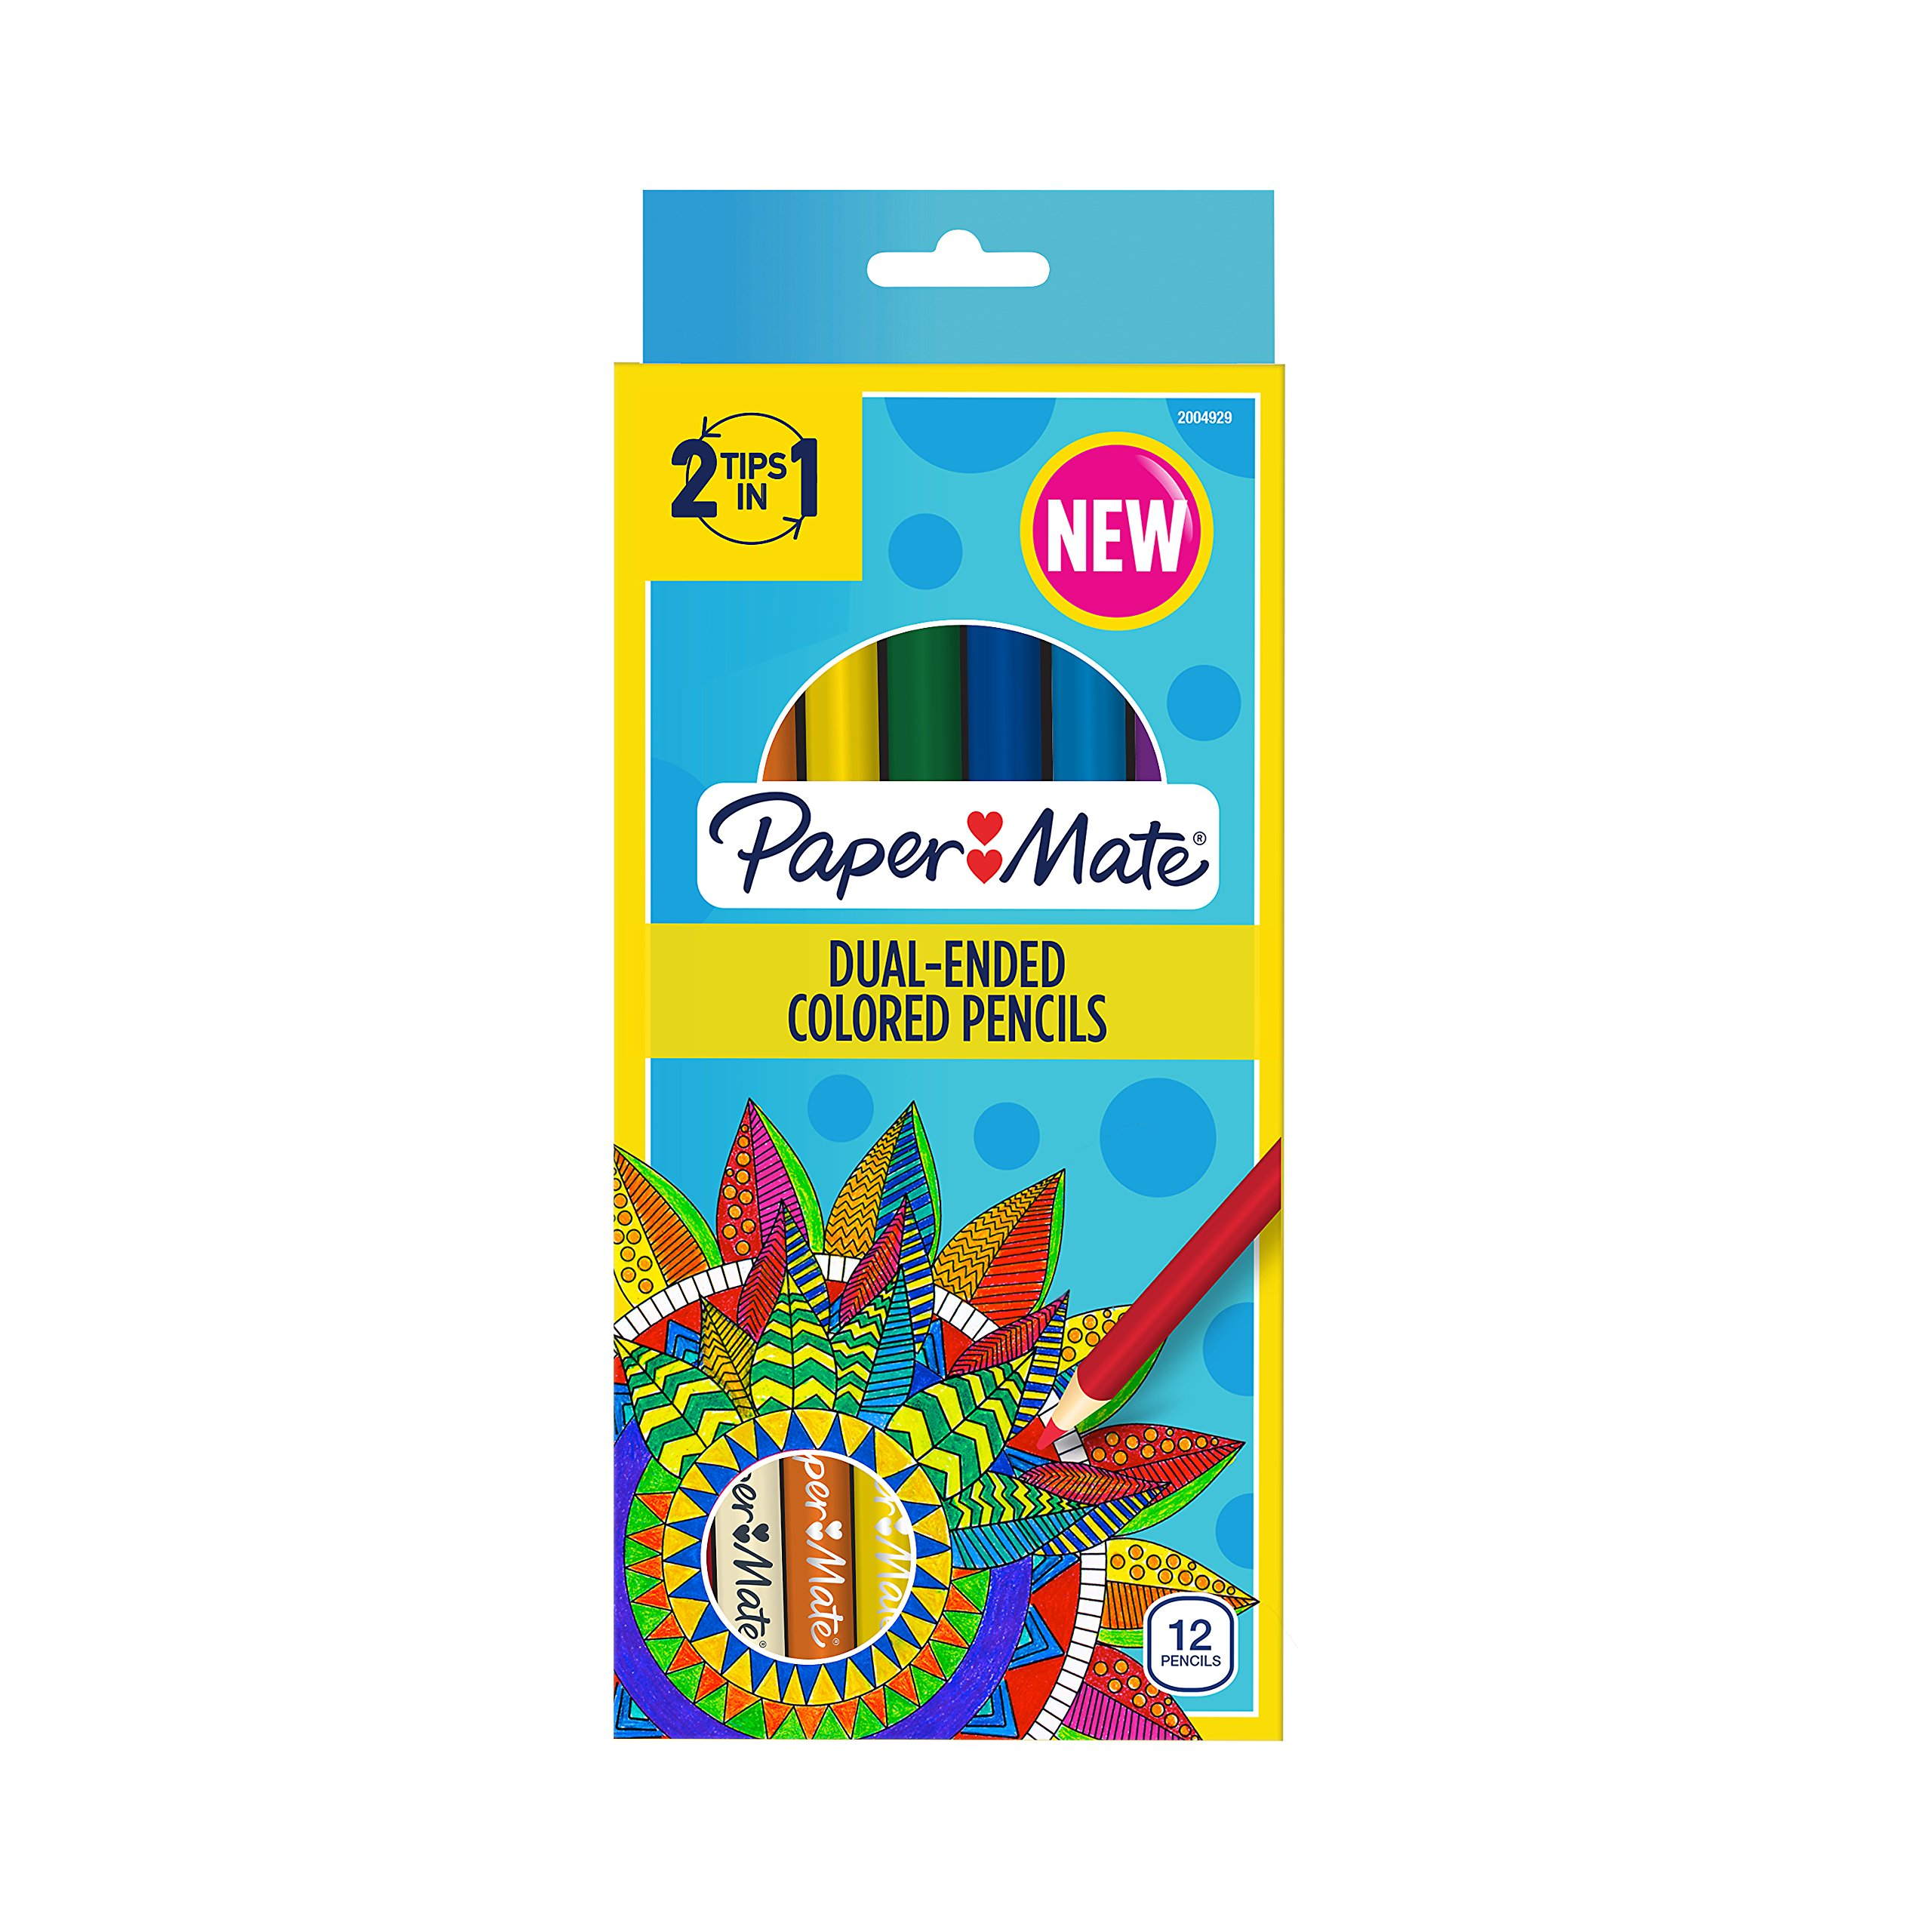 Paper Mate Dual Ended Colored Pencils, Assorted Color, Pre Sharpened, 12 Count (2004971)